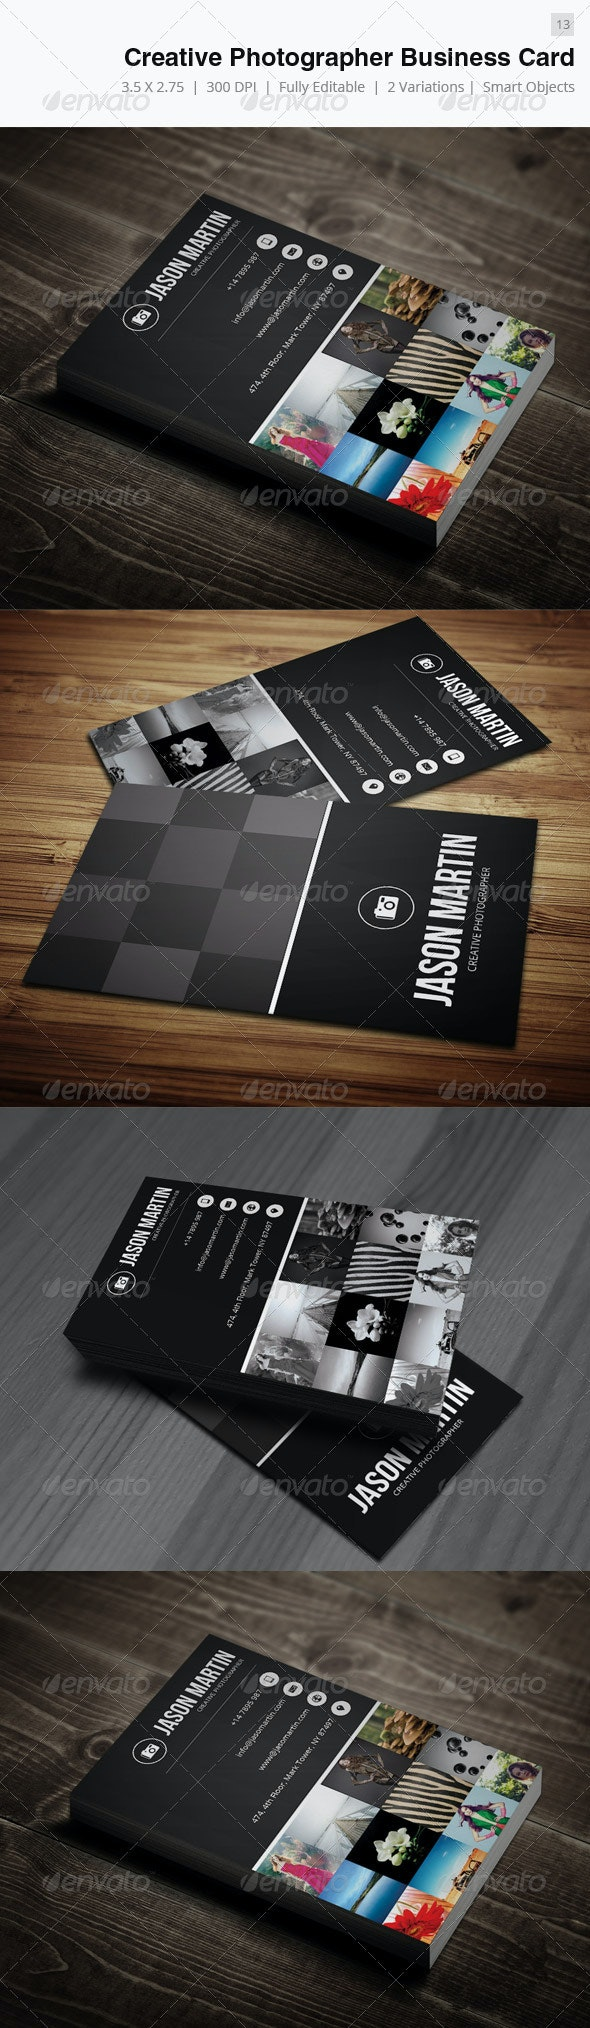 Creative Photographer Business Card - 13 - Creative Business Cards